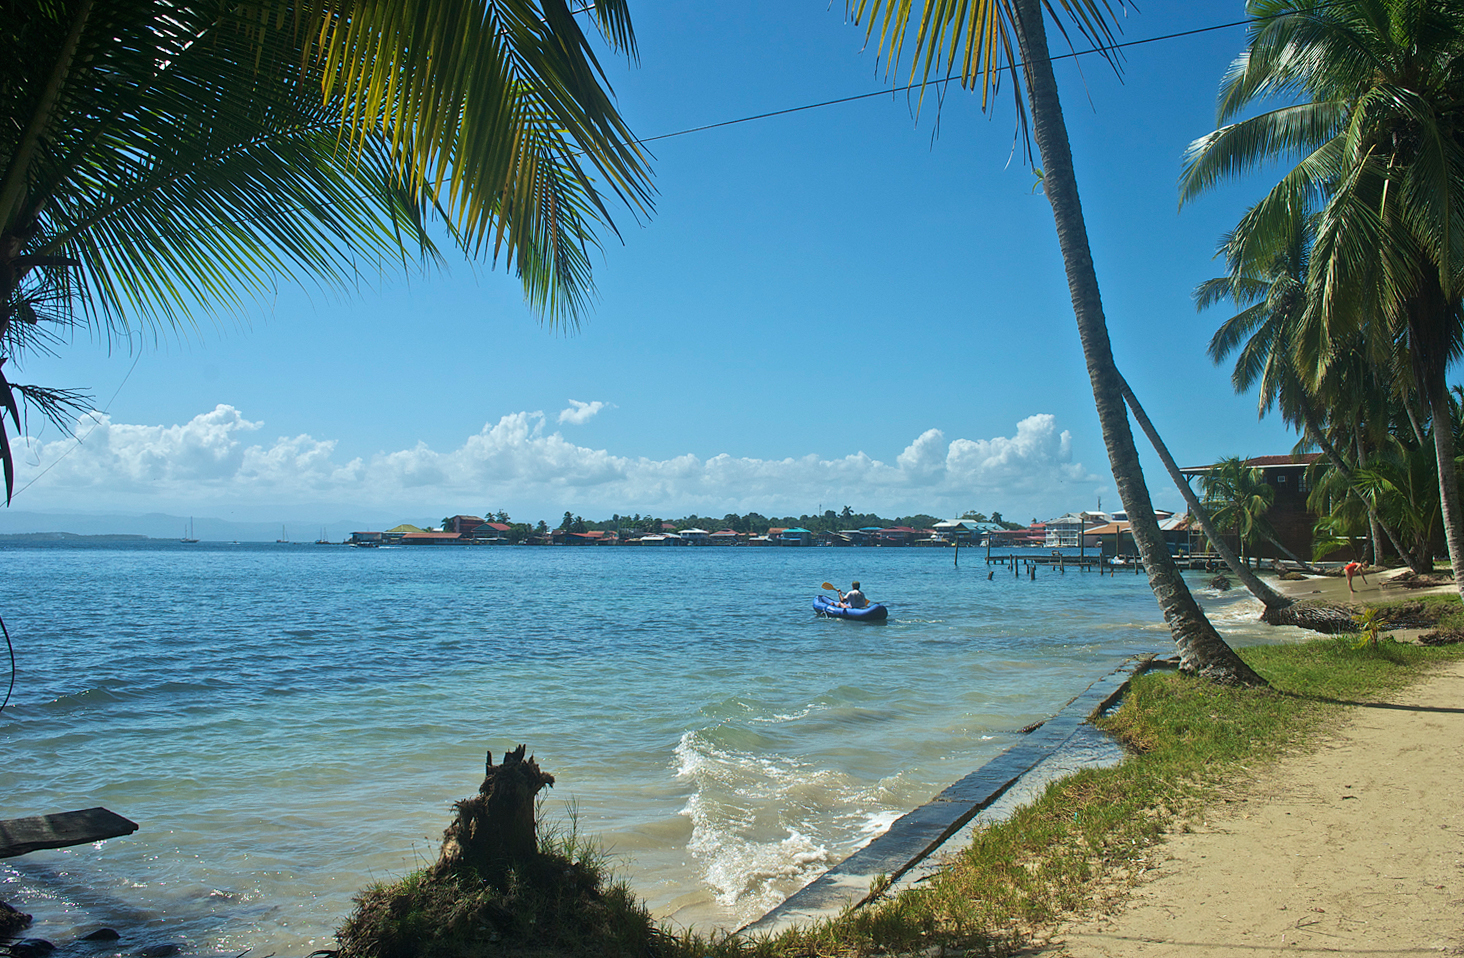 Top 10 Things to do in Bocas del Toro